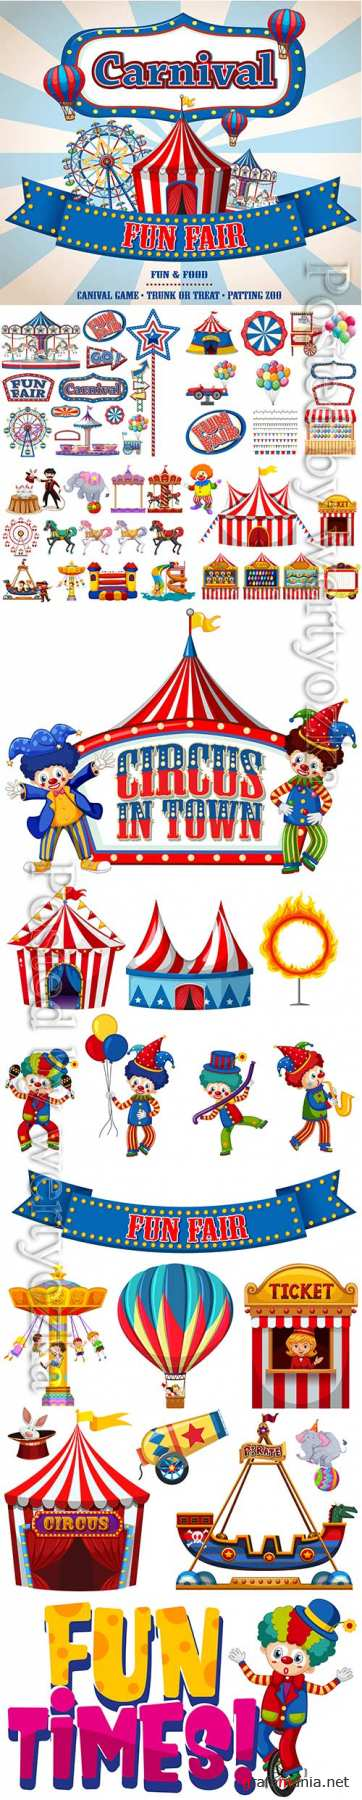 Set of circus items vector illustration